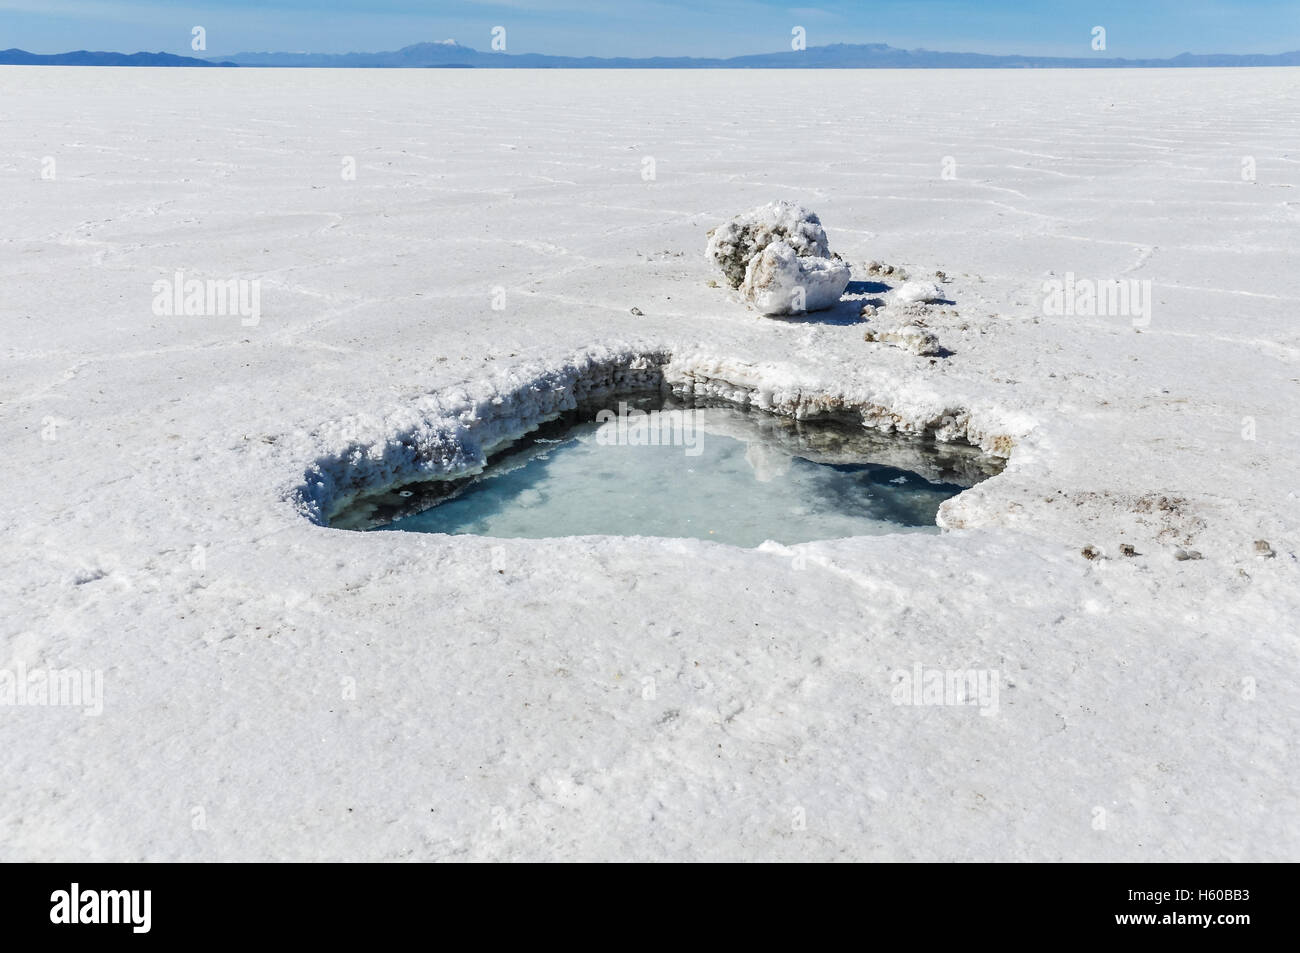 Water in a hole in Salar de Uyuni, the biggest salt flat in the world, Bolivia - Stock Image